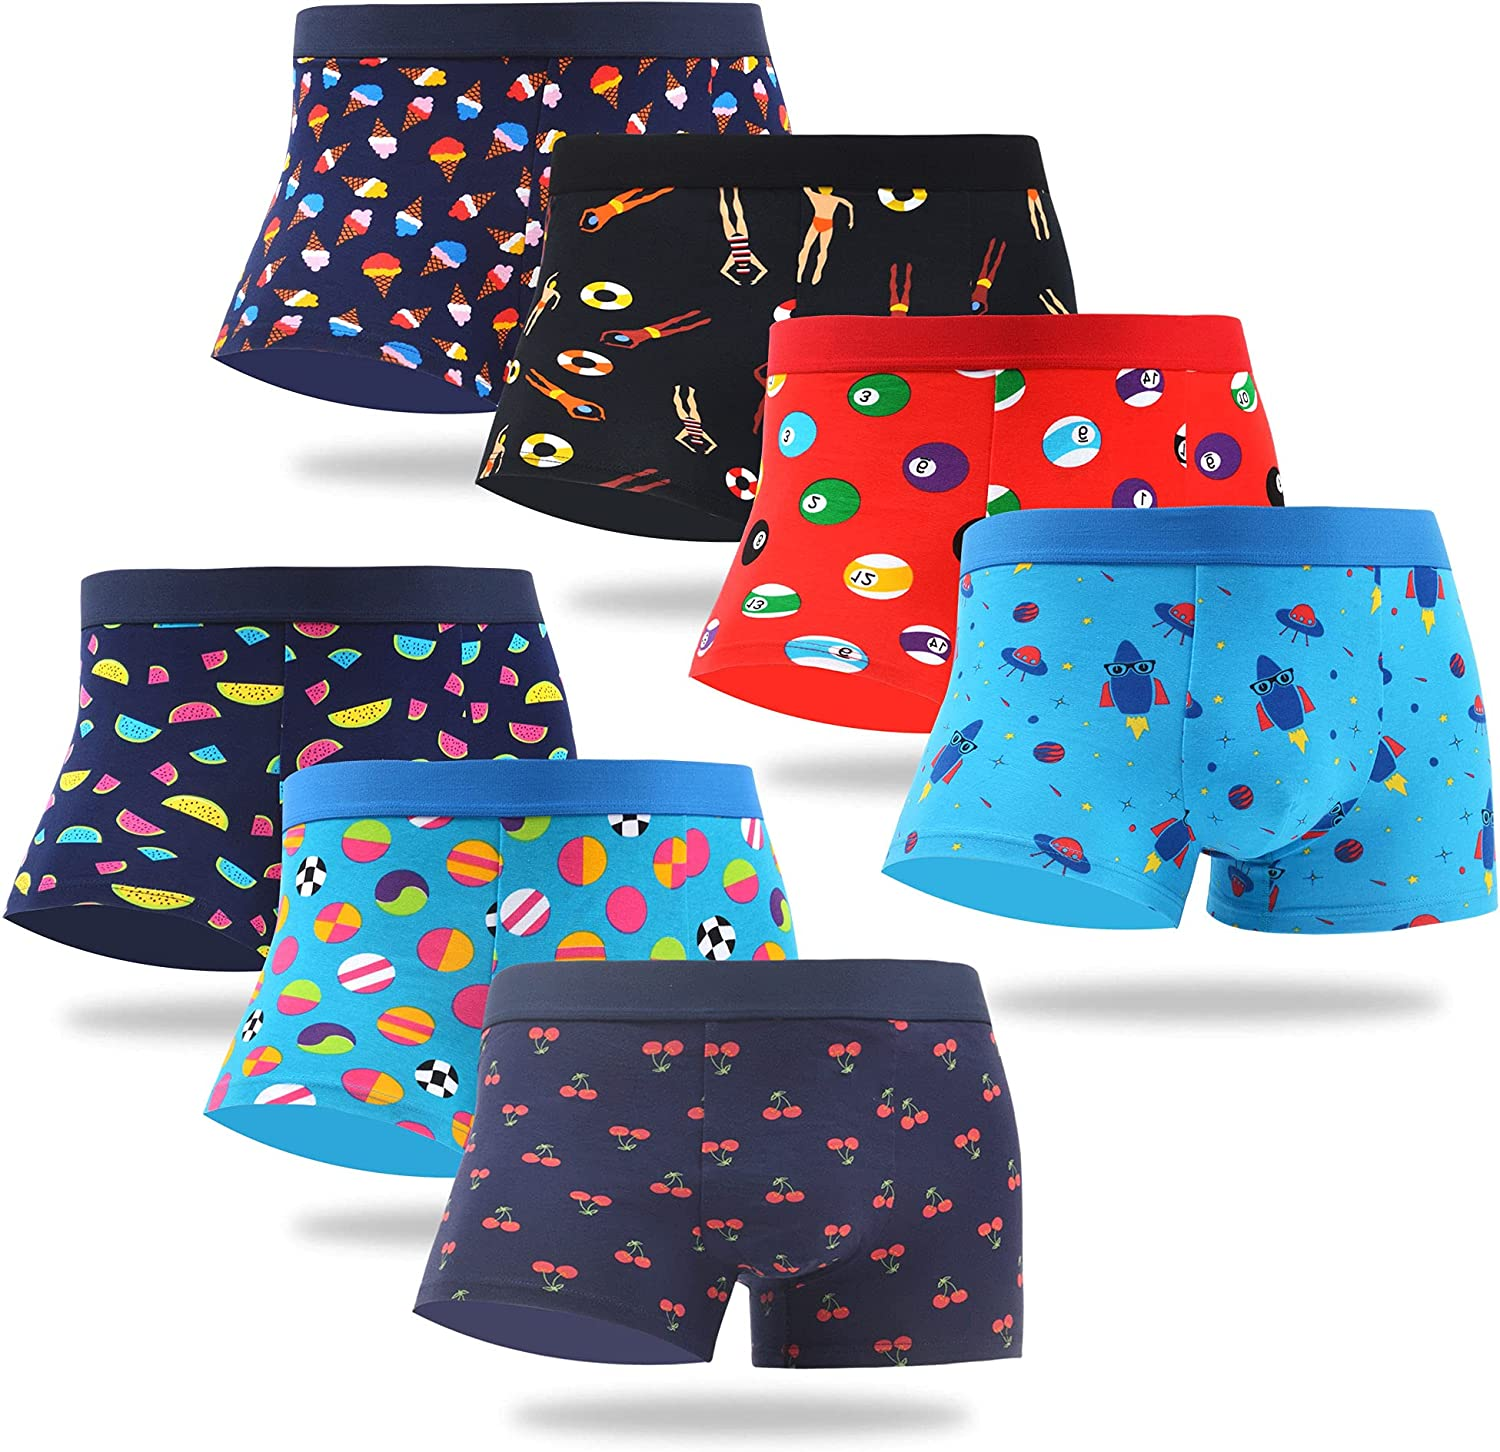 WeciBor Men's Trunks Underwear Cool Funny Easy-to-use Colorful Novelty Free Shipping Cheap Bargain Gift Cotto